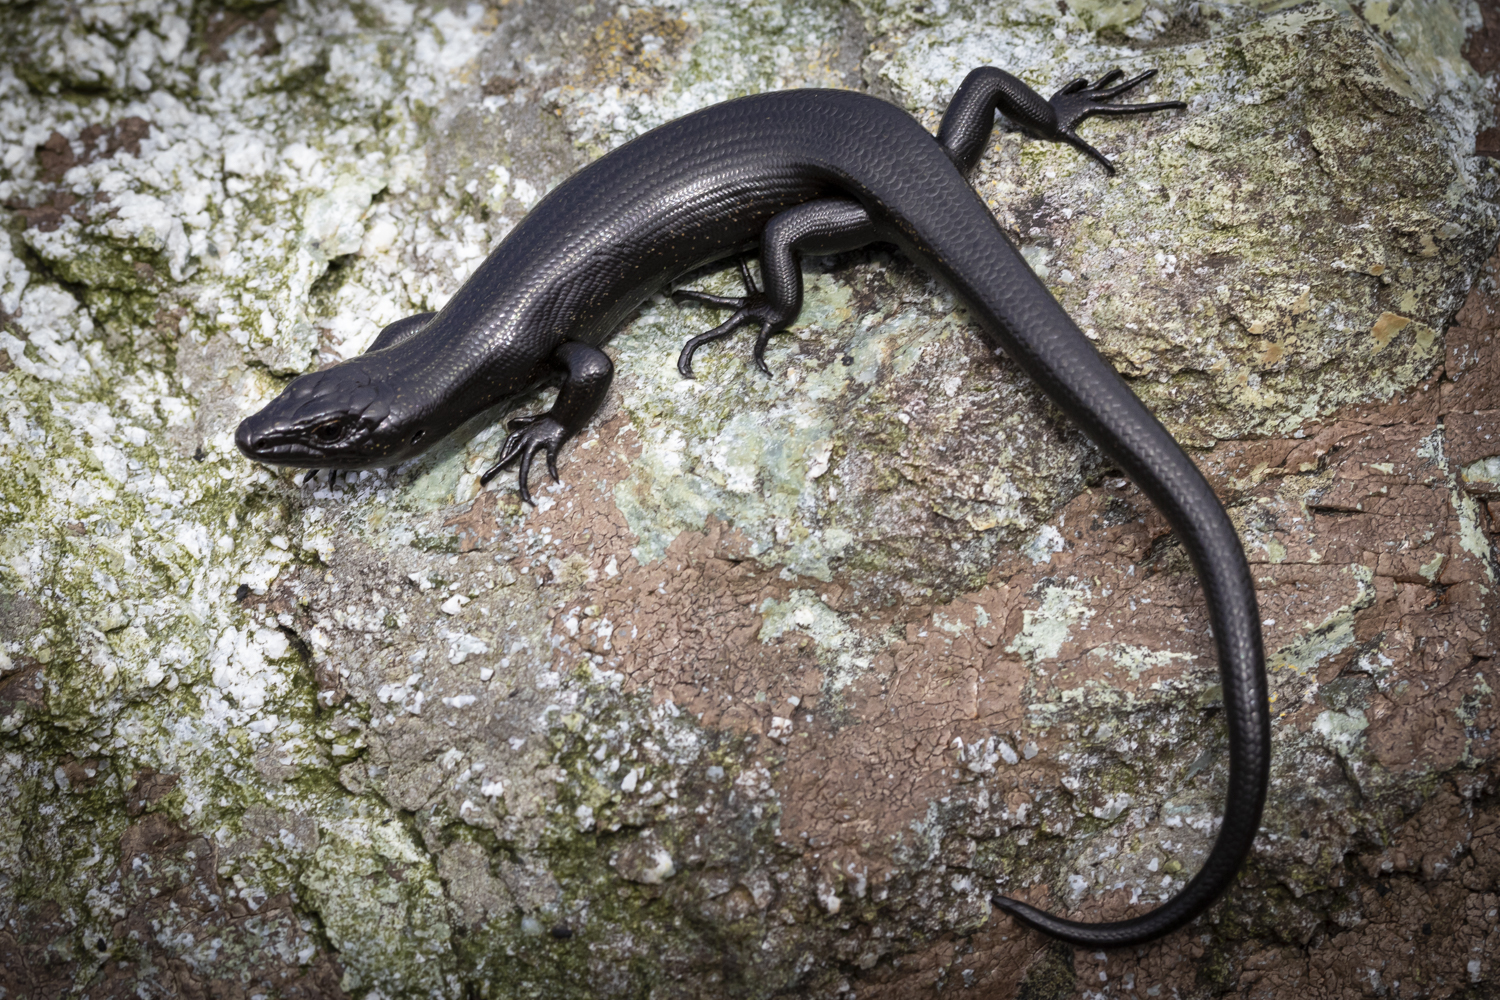 Fiordland skink – what do we know about the species?